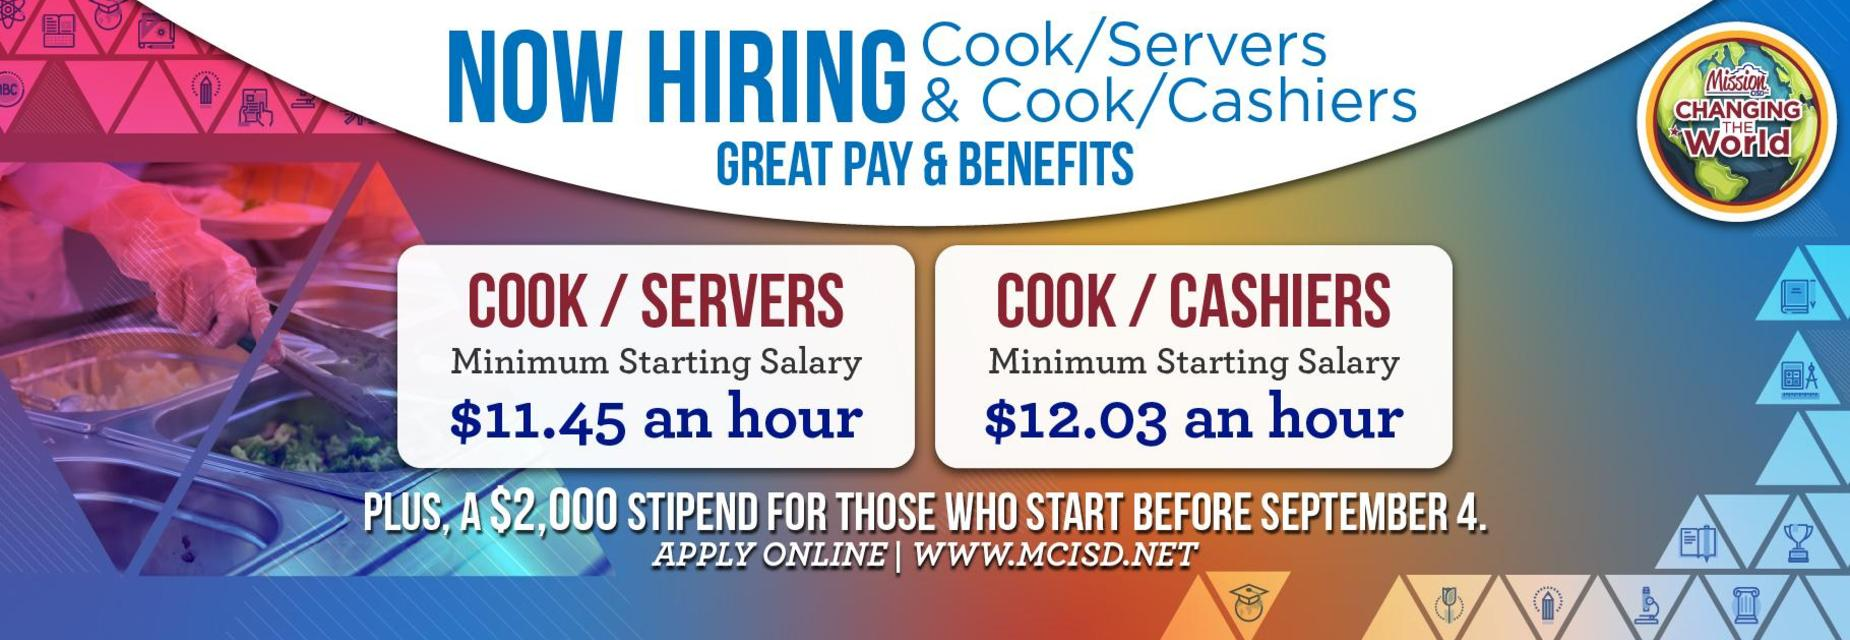 Now hiring graphic for cooks and servers